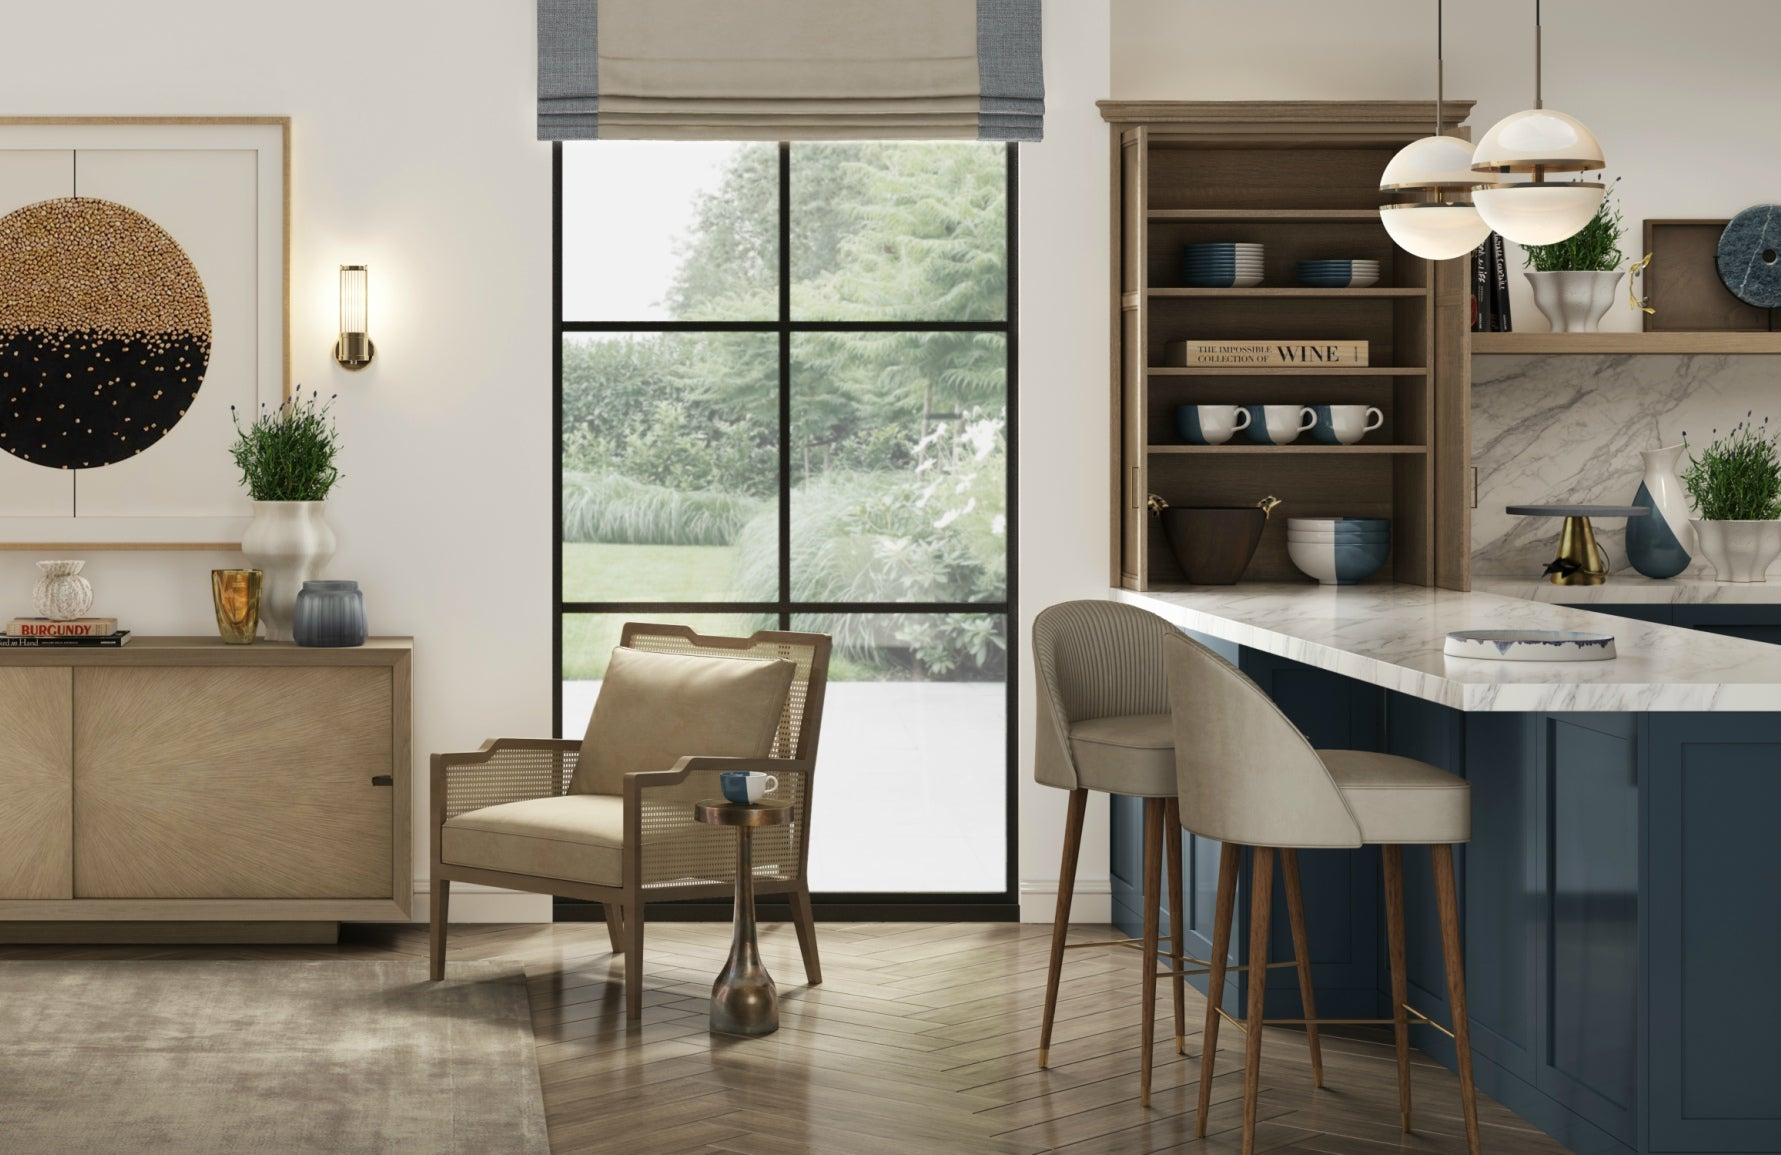 Get The Look | Wimbledon Collection | Luxury Kitchen Design | Shop the look at LuxDeco.com